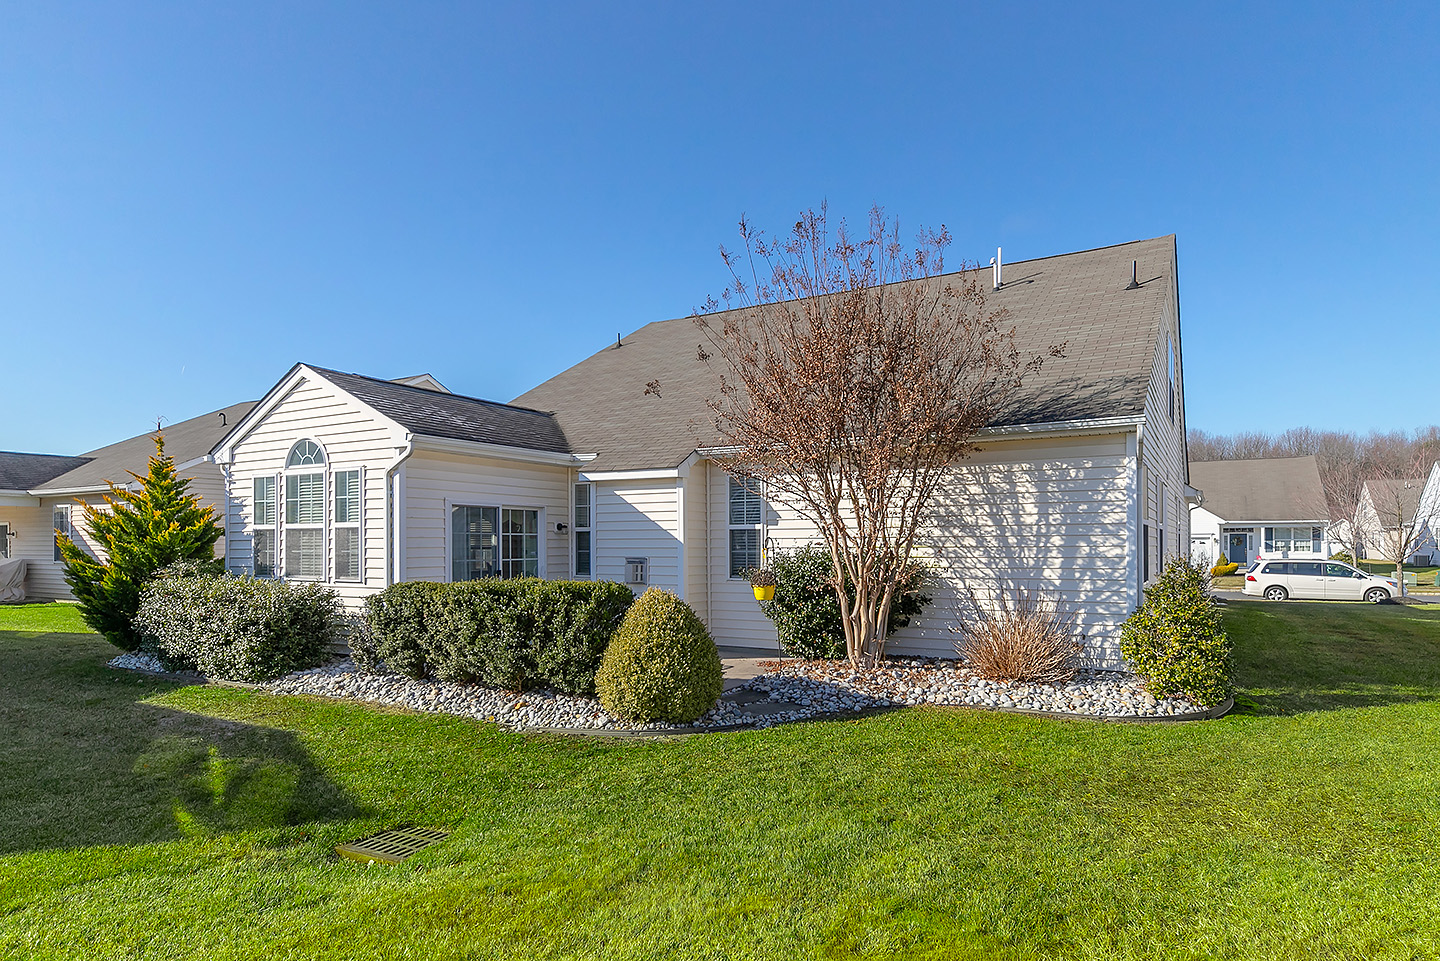 31 Caserta Dr, Sewell NJ 08080